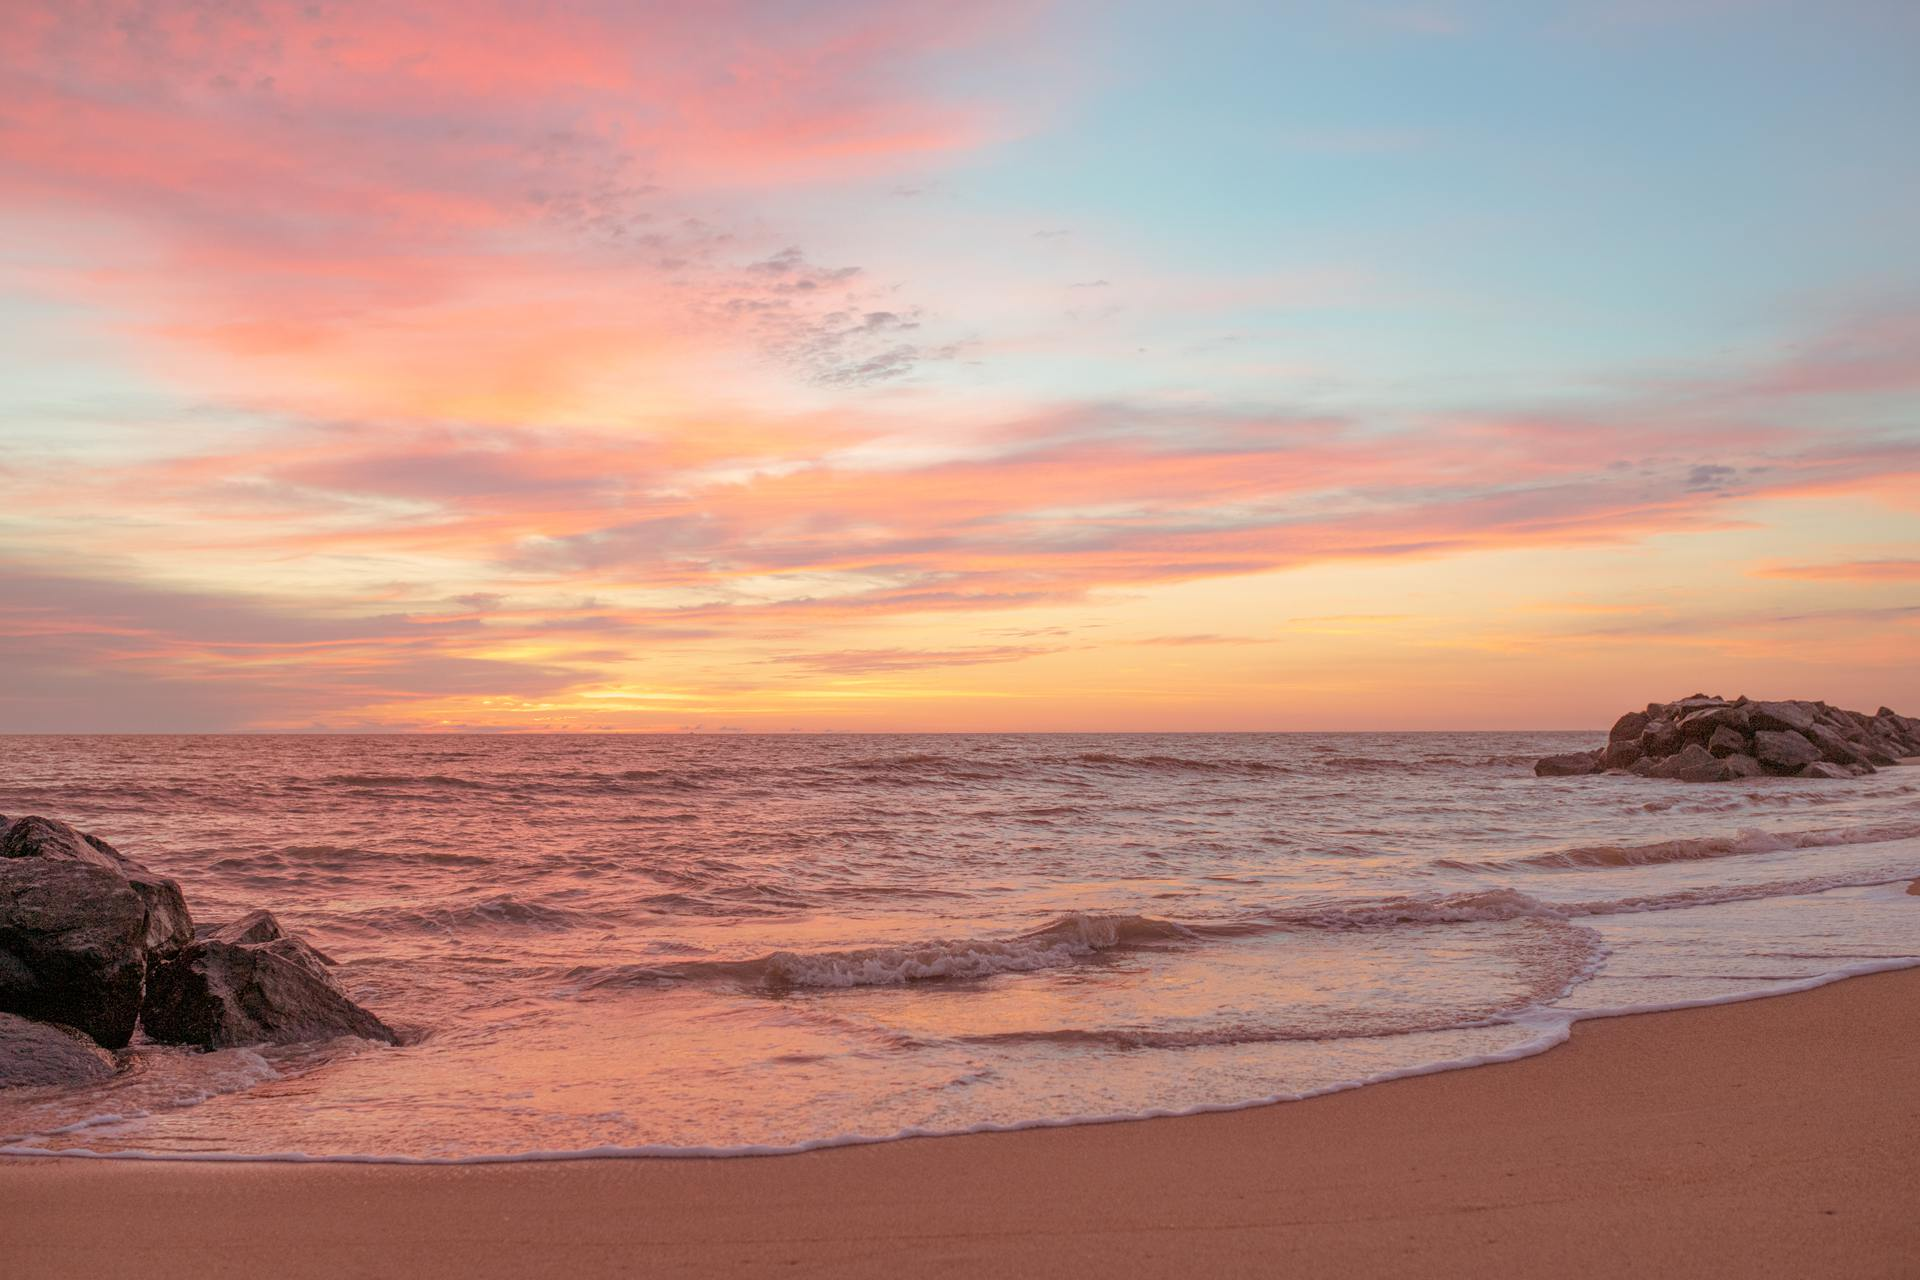 Sunrise at Fort Story Beach in Virginia. The colors are very saturated and vivid